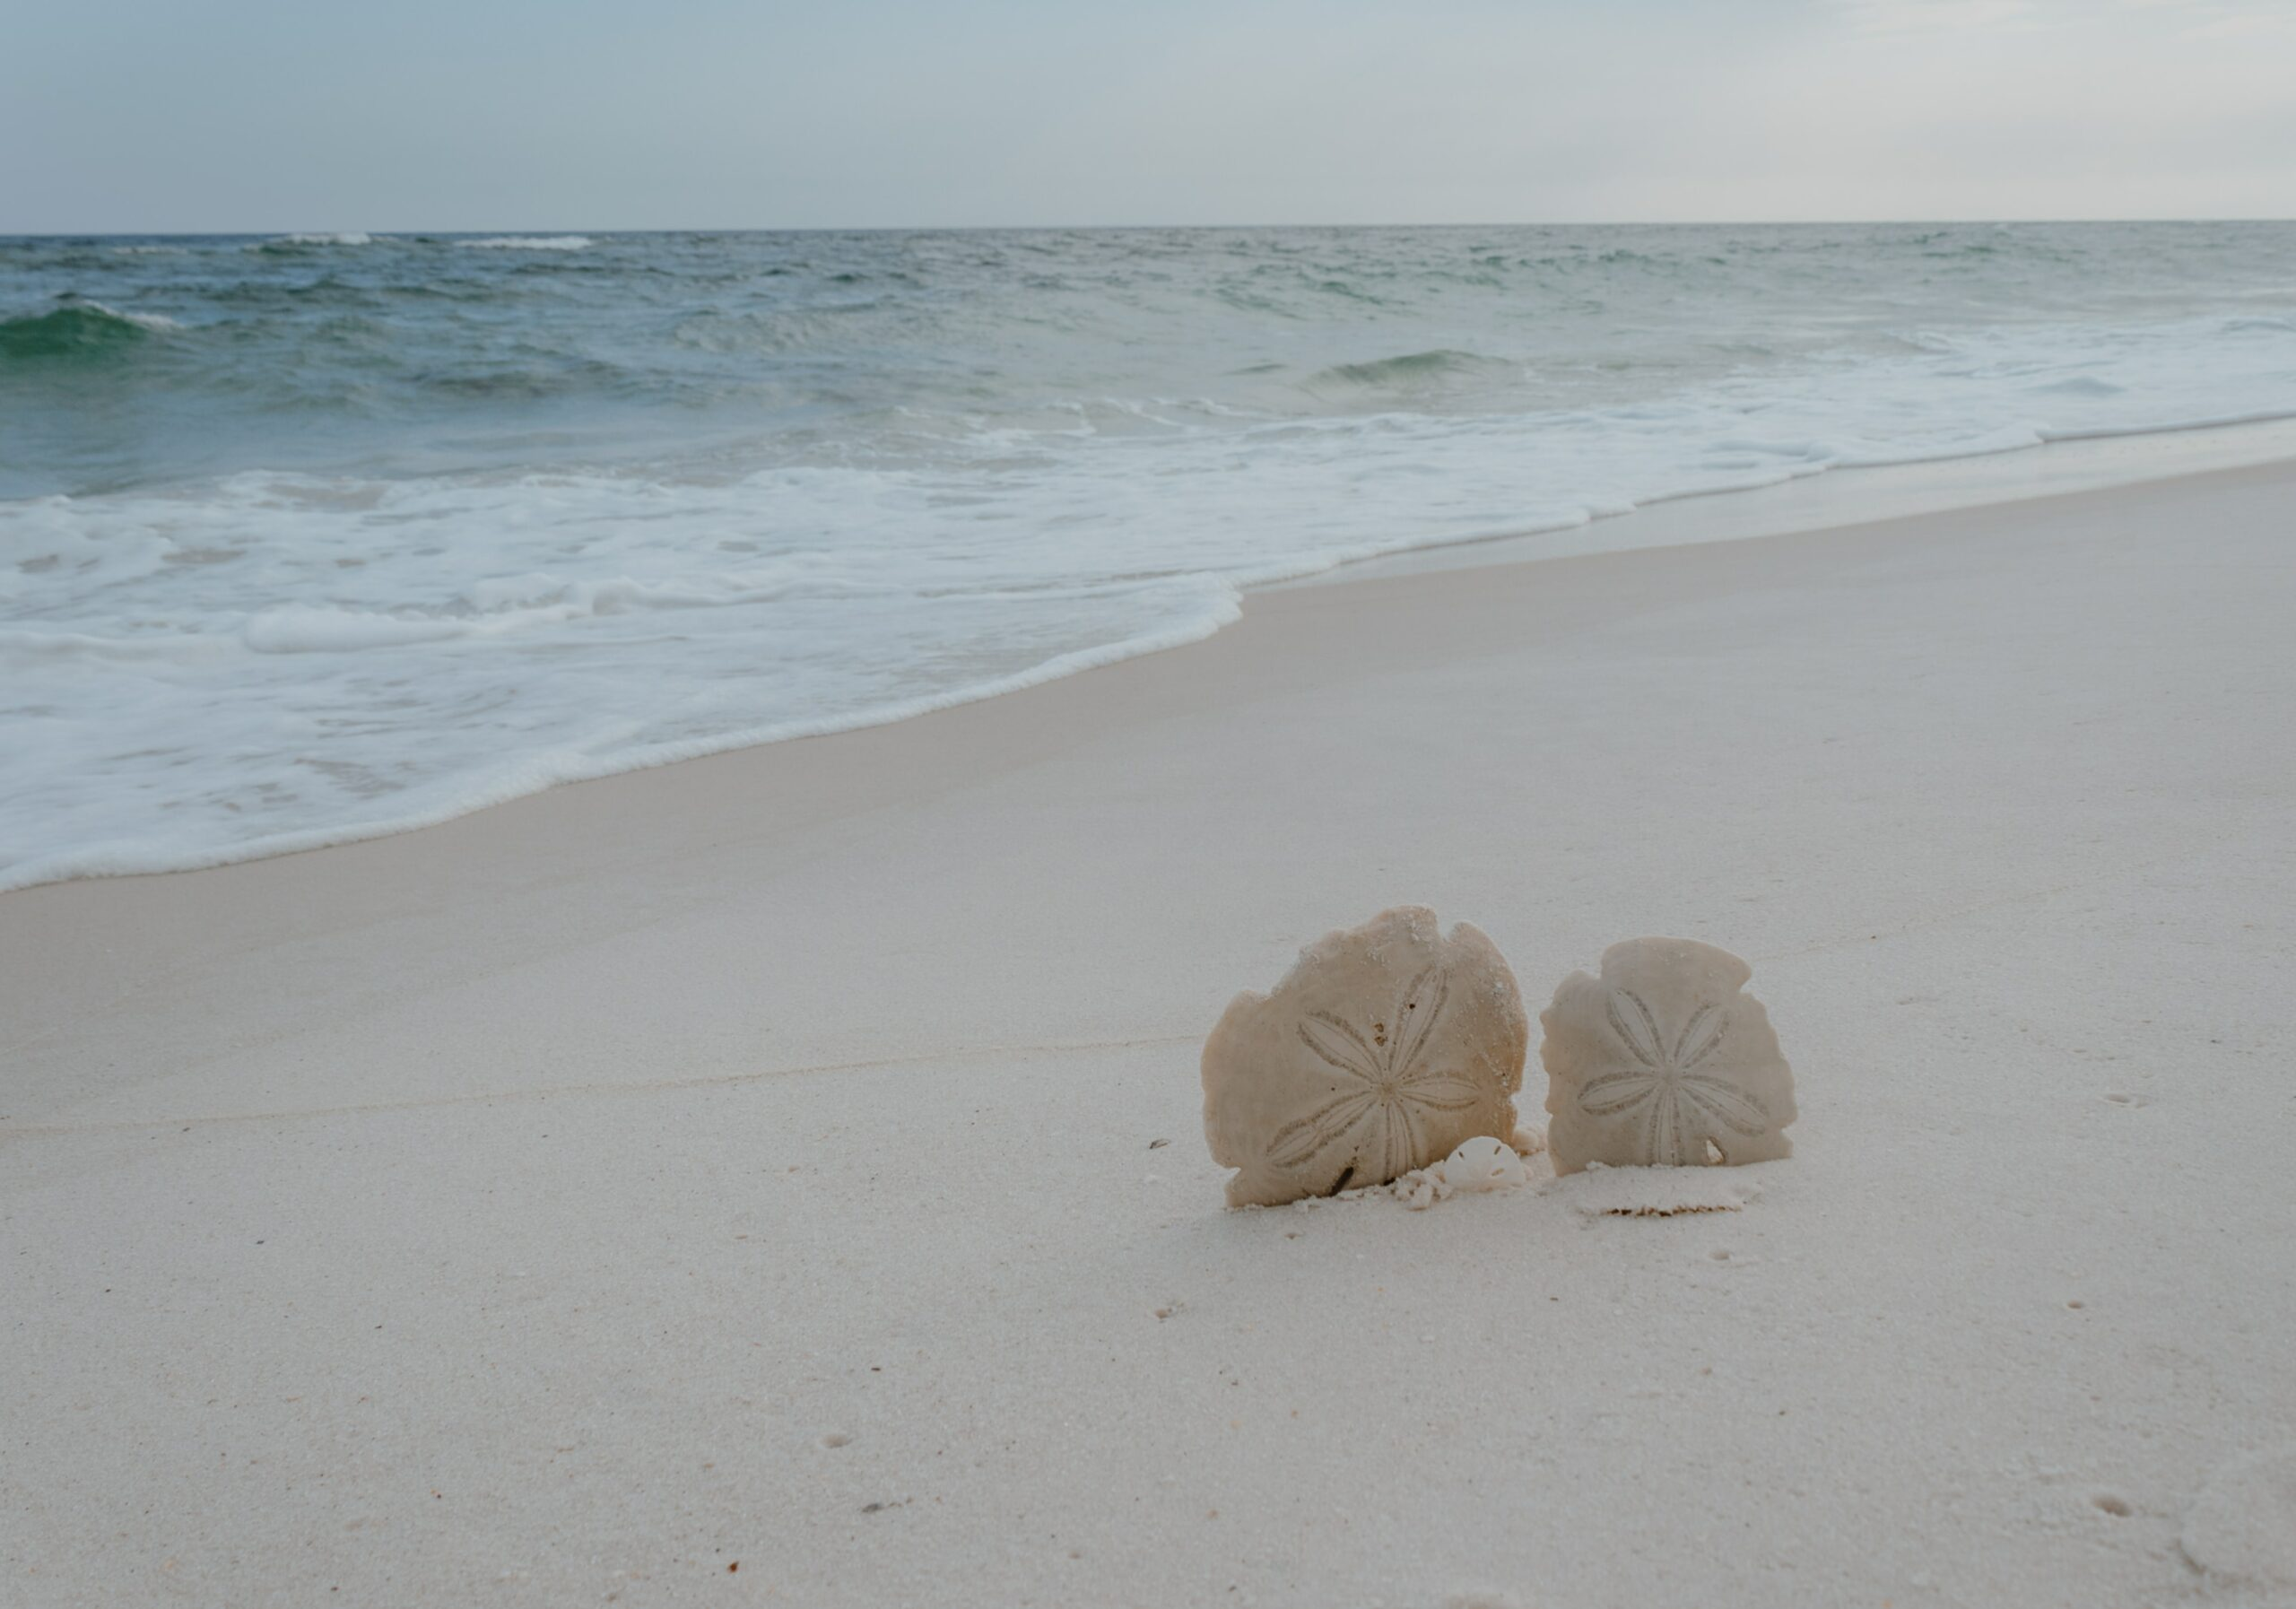 As part of Marie's story regarding a different resolution, two sand dollars stick out of the sand in front of a shoreline